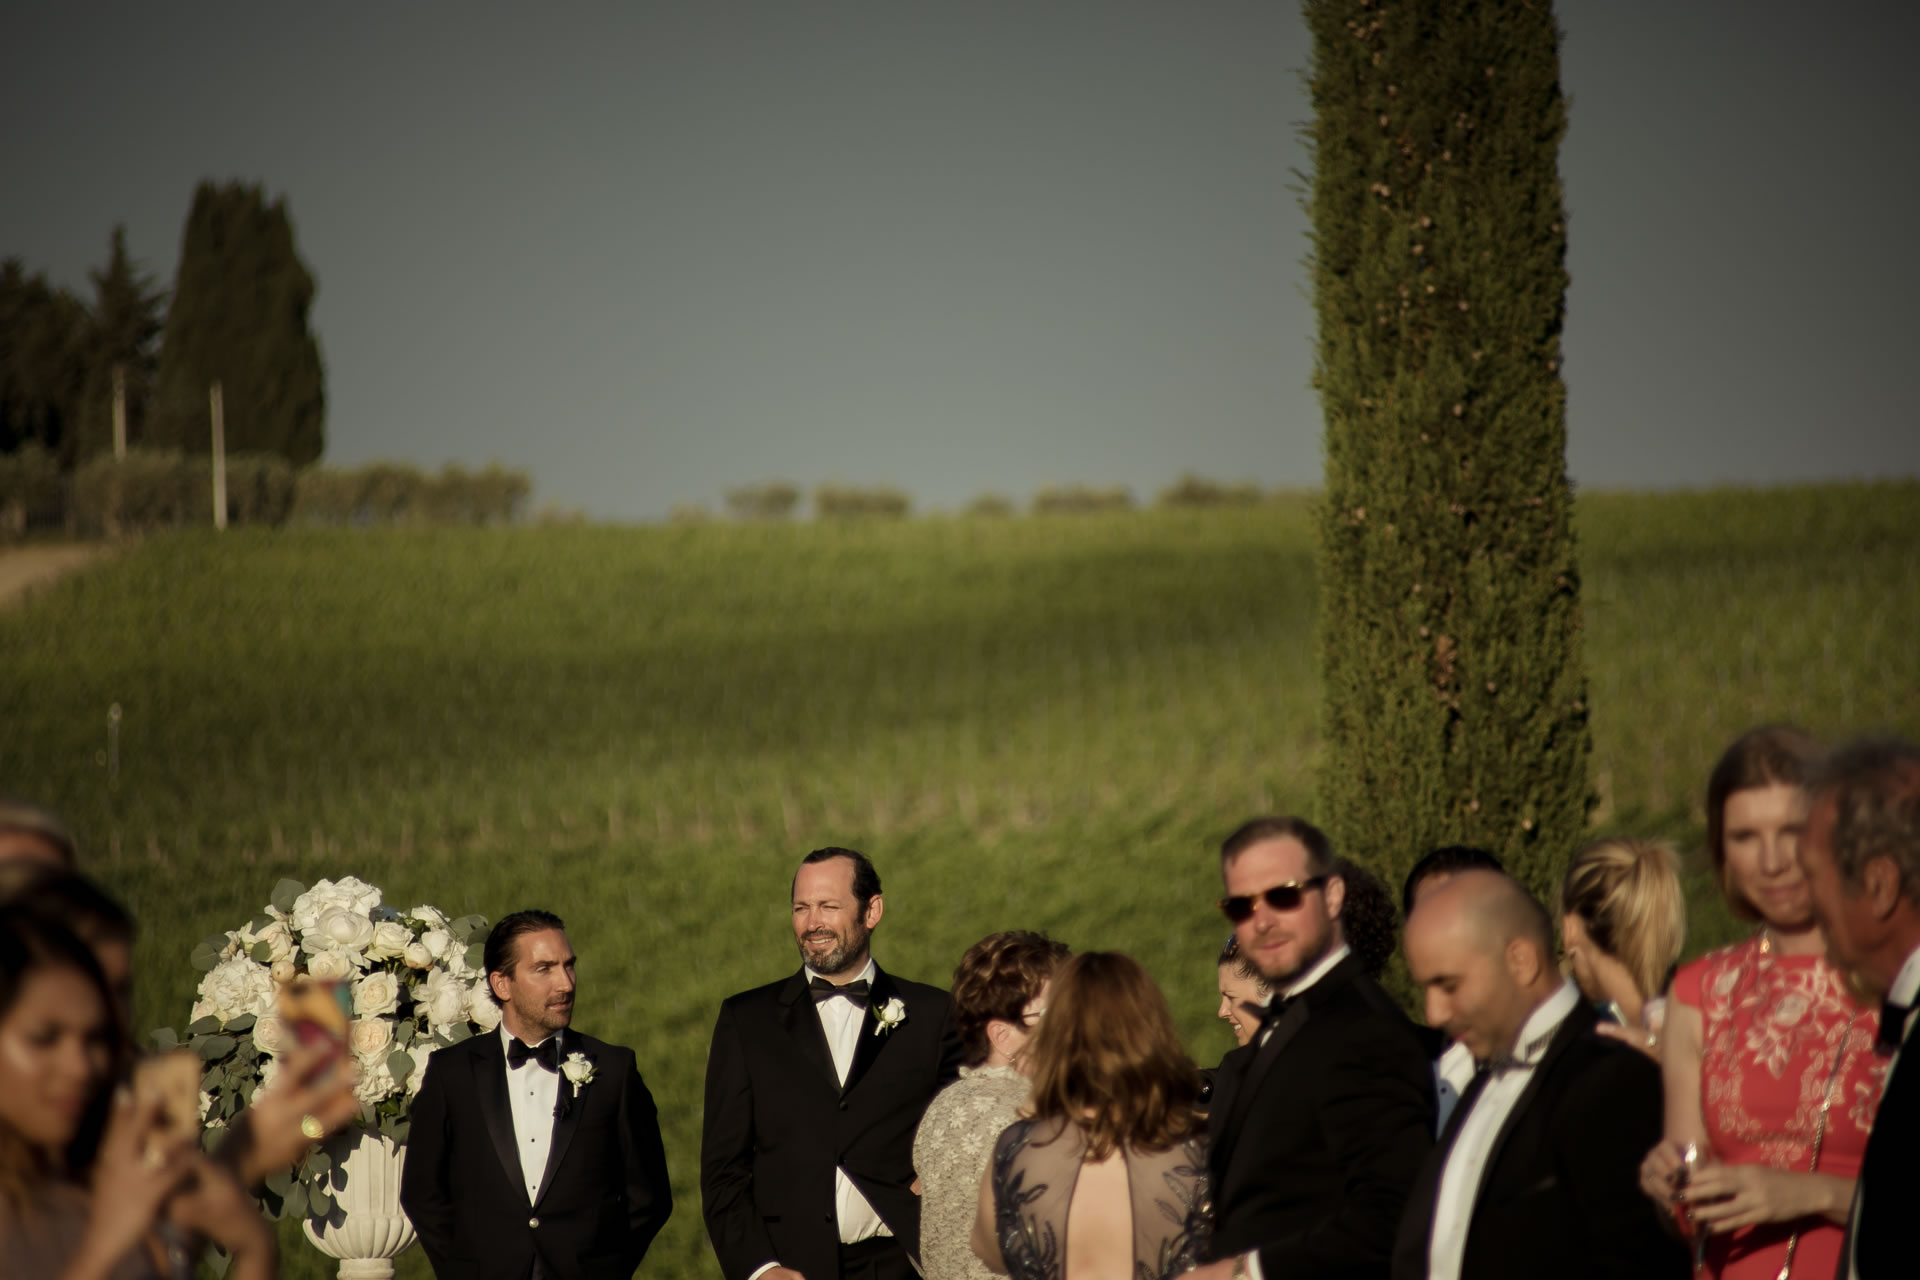 Waiting - 33 :: Exciting wedding in the countryside of Siena :: Luxury wedding photography - 32 :: Waiting - 33